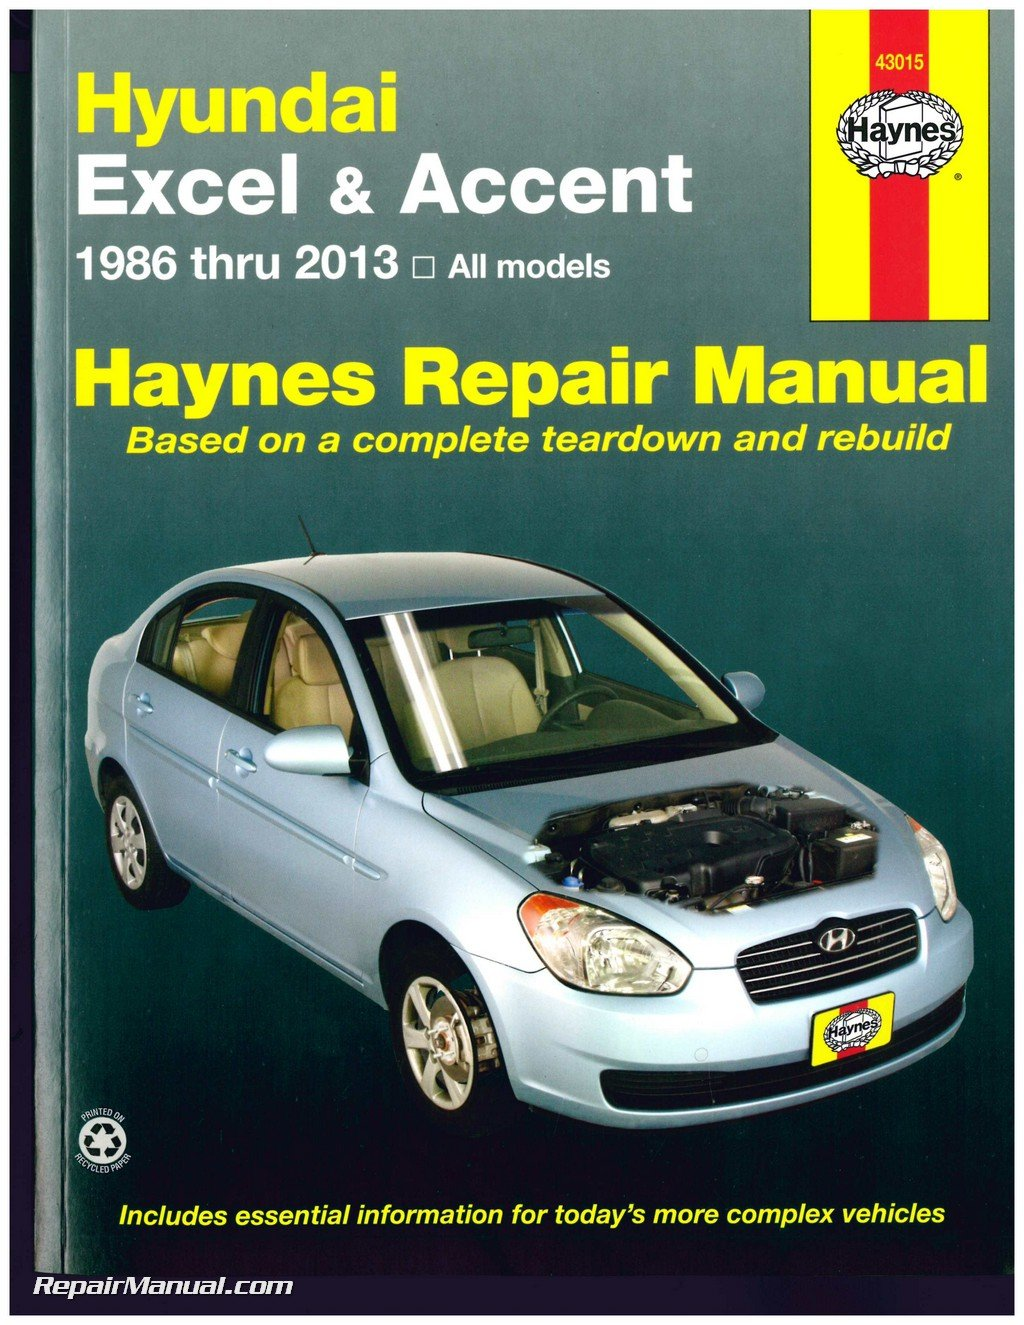 H43015 Hyundai Excel Accent 1986 2013 Haynes Auto Repair Service Schematic Manual Manufacturer Books